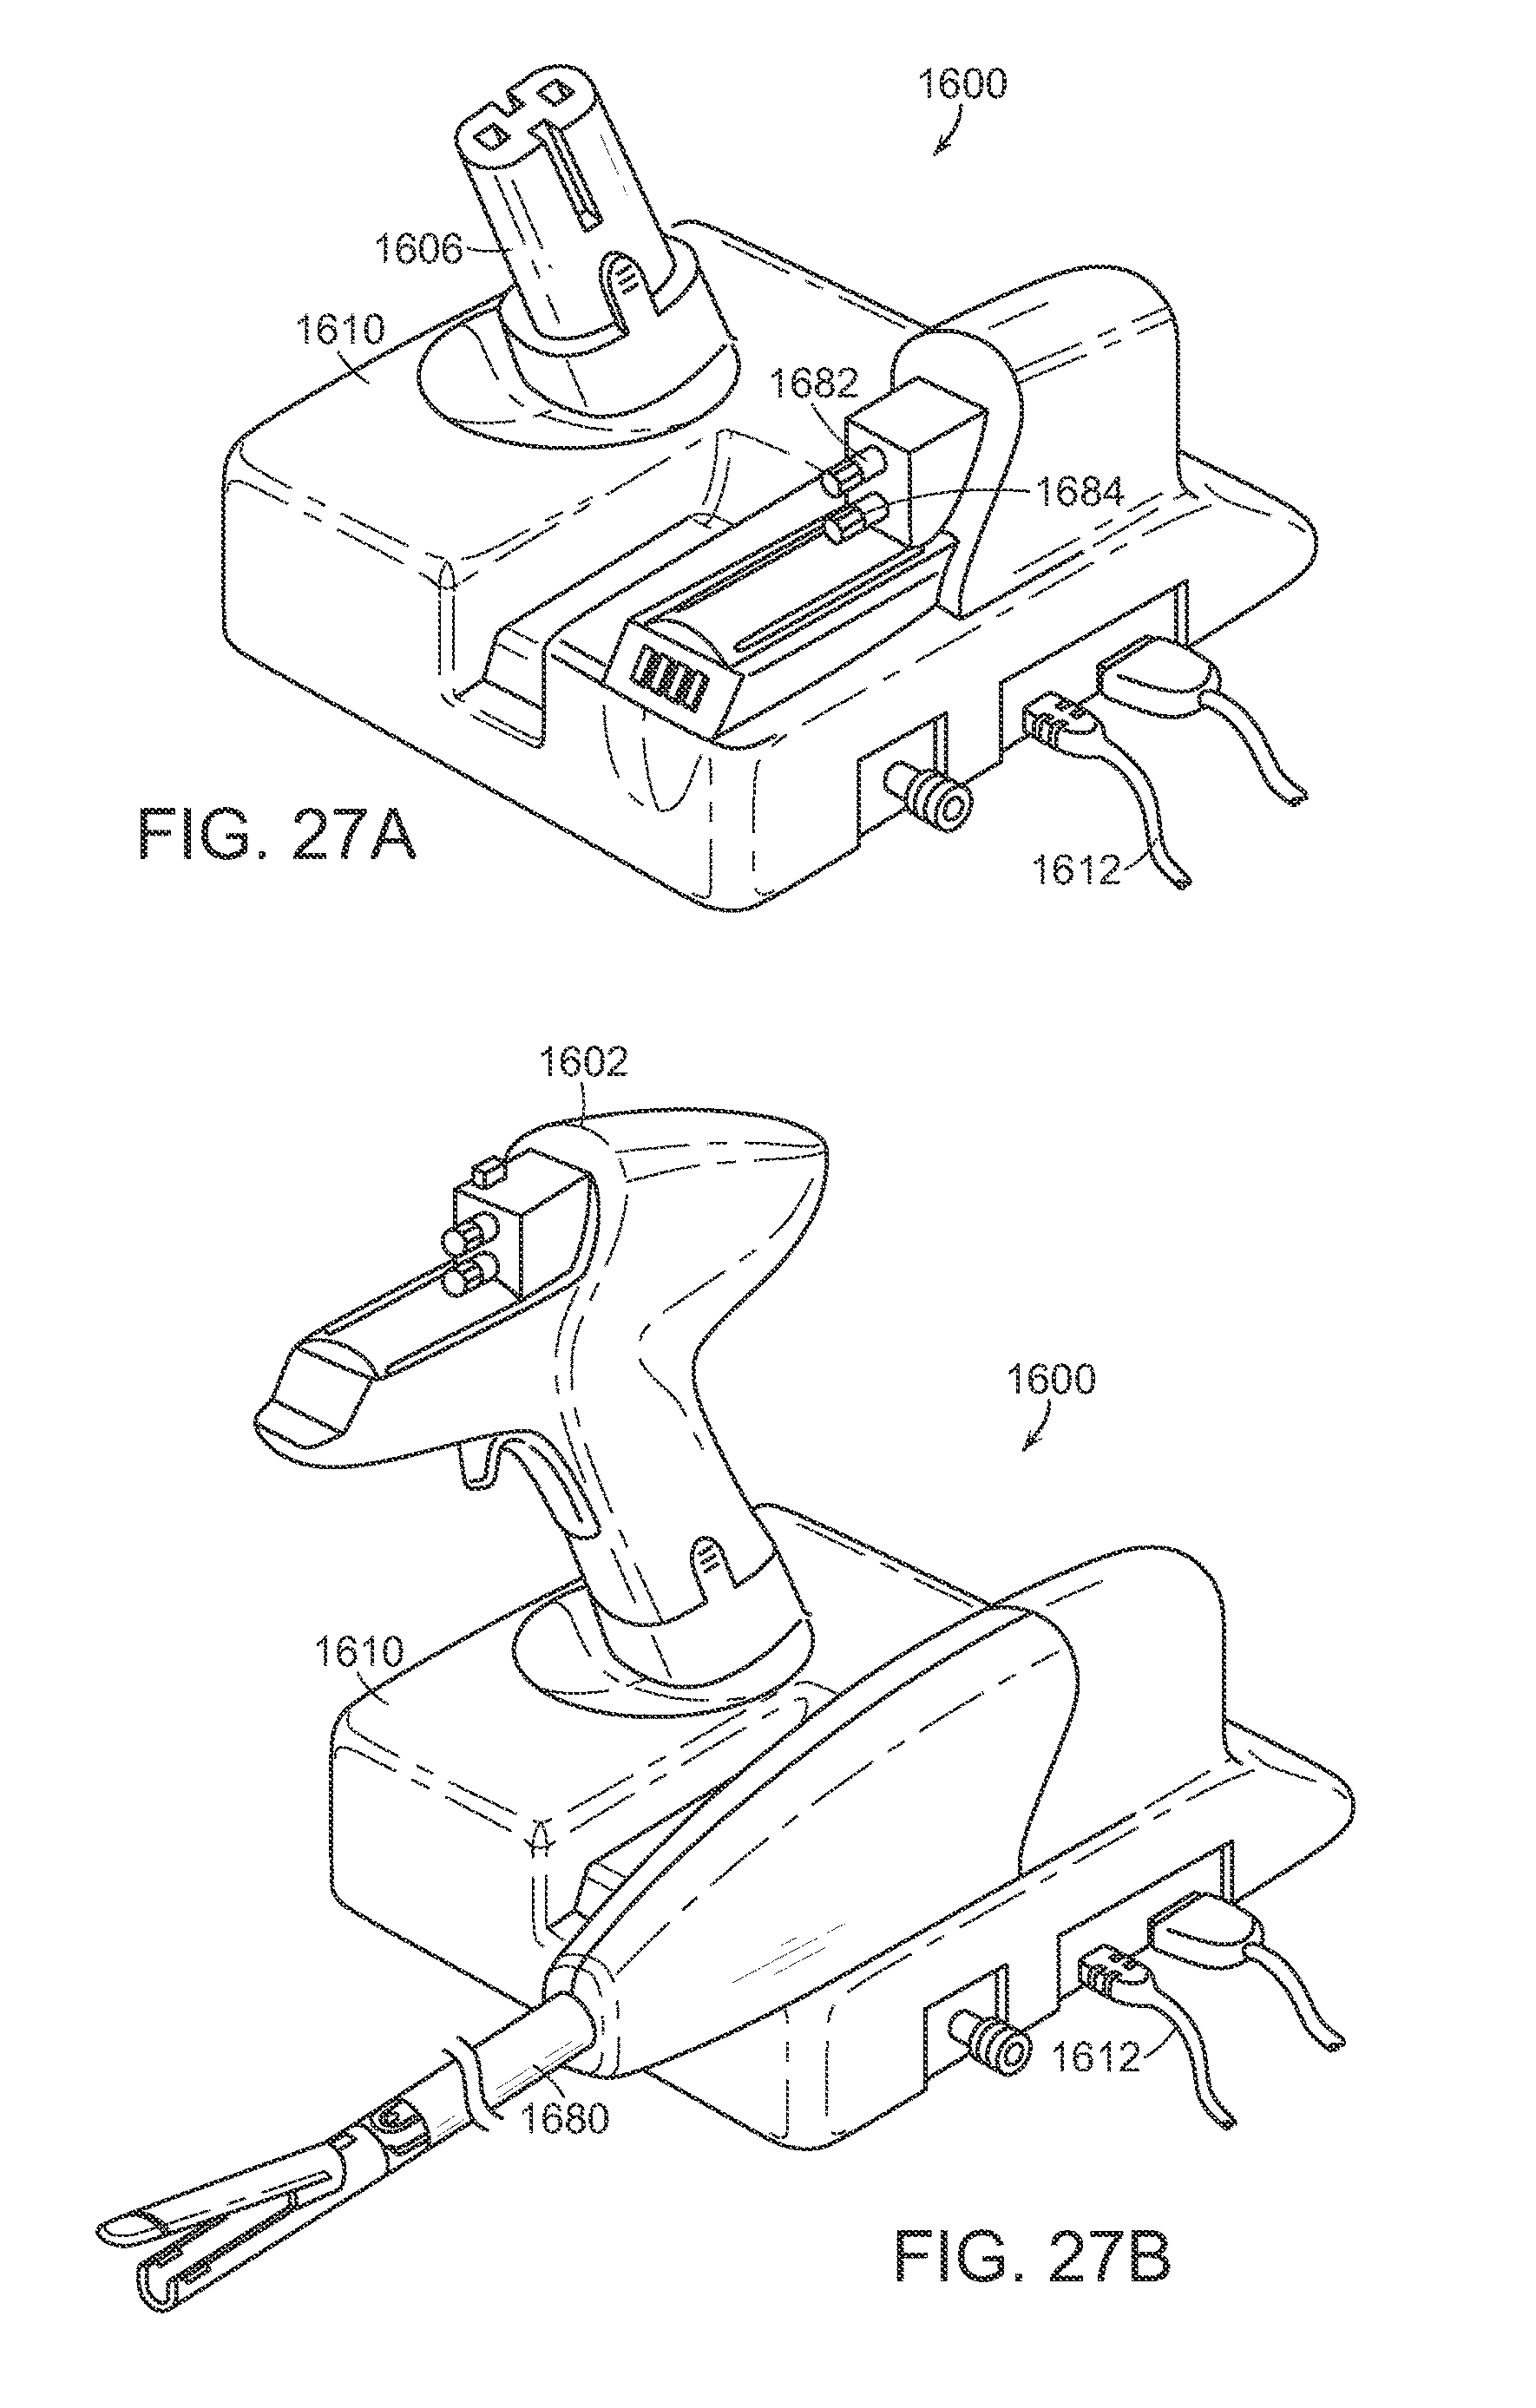 Us9931118b2 reinforced battery for a surgical instrument patents